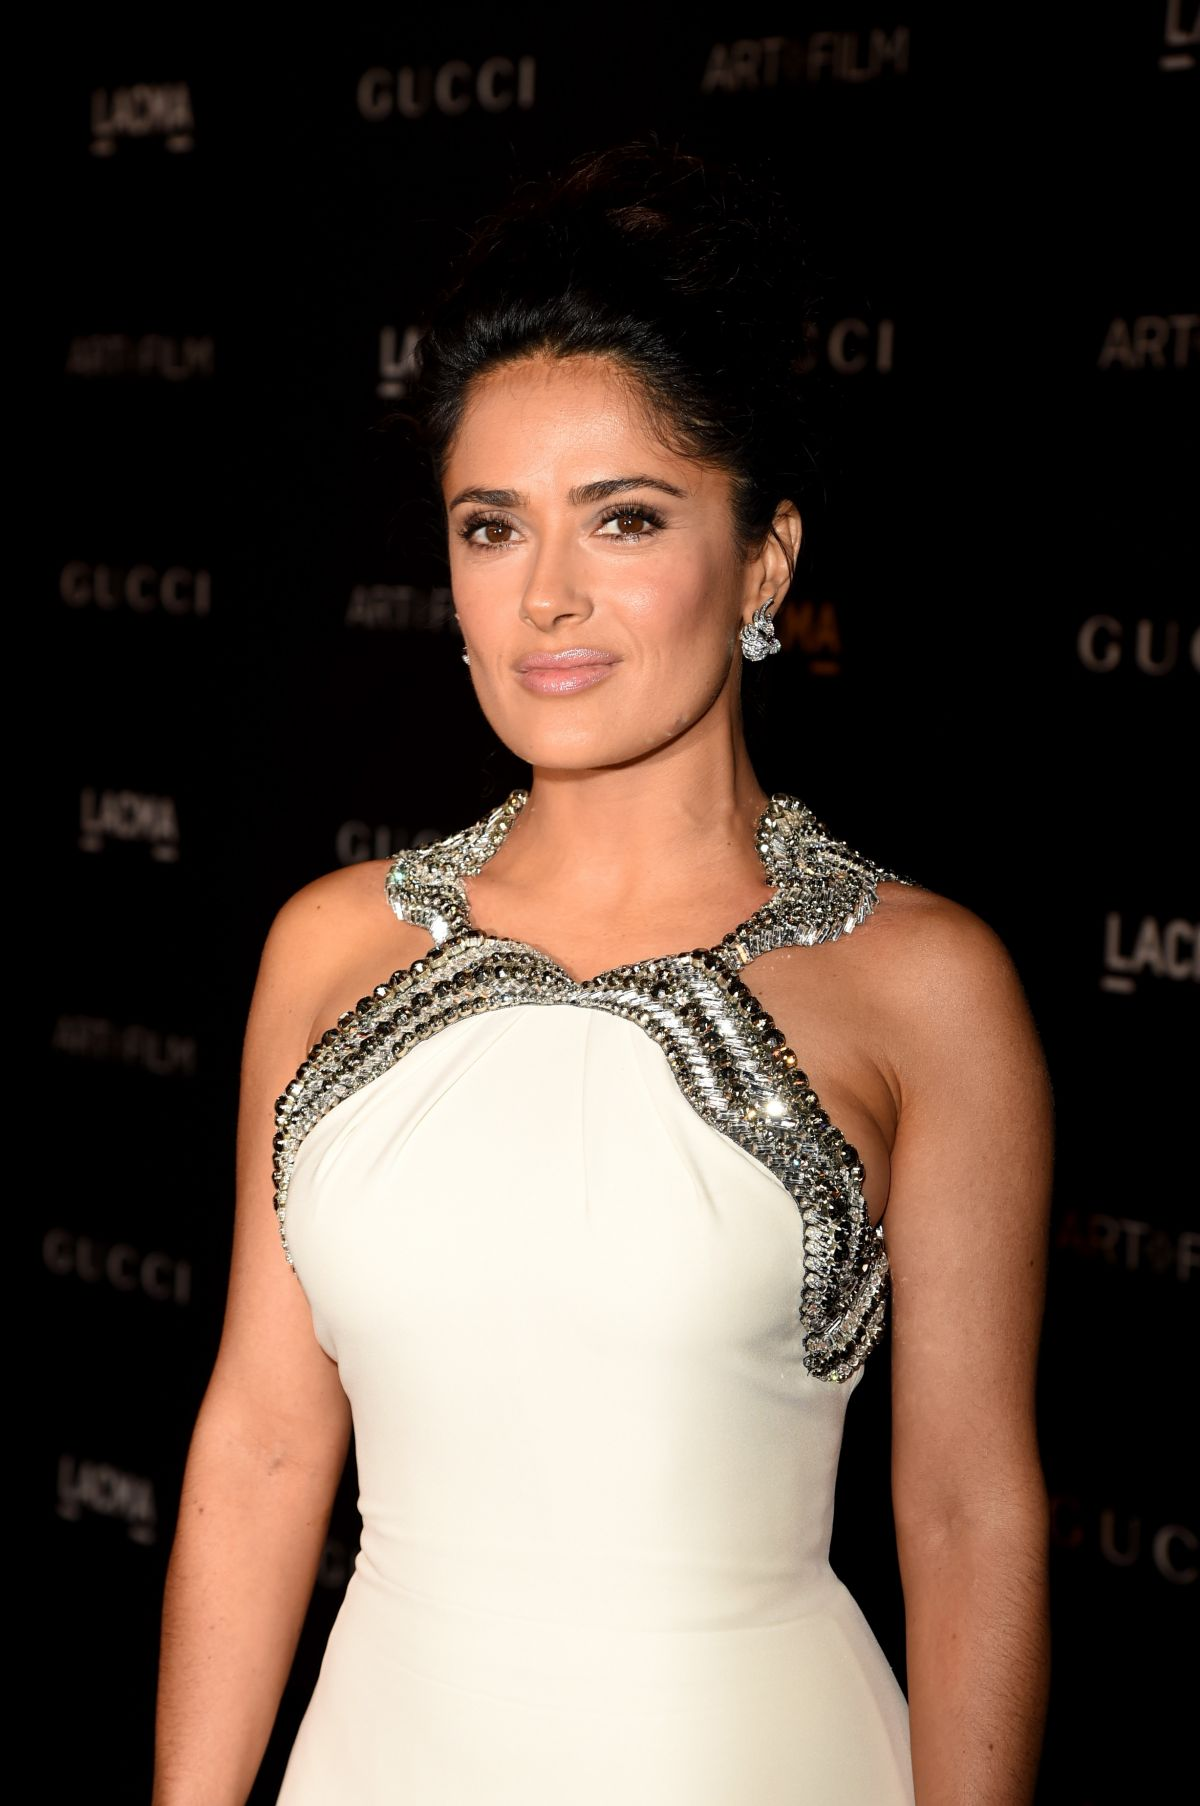 SALMA HAYEK at 2014 Lacma Art + Film Gala in Los Angeles - HawtCelebs ...